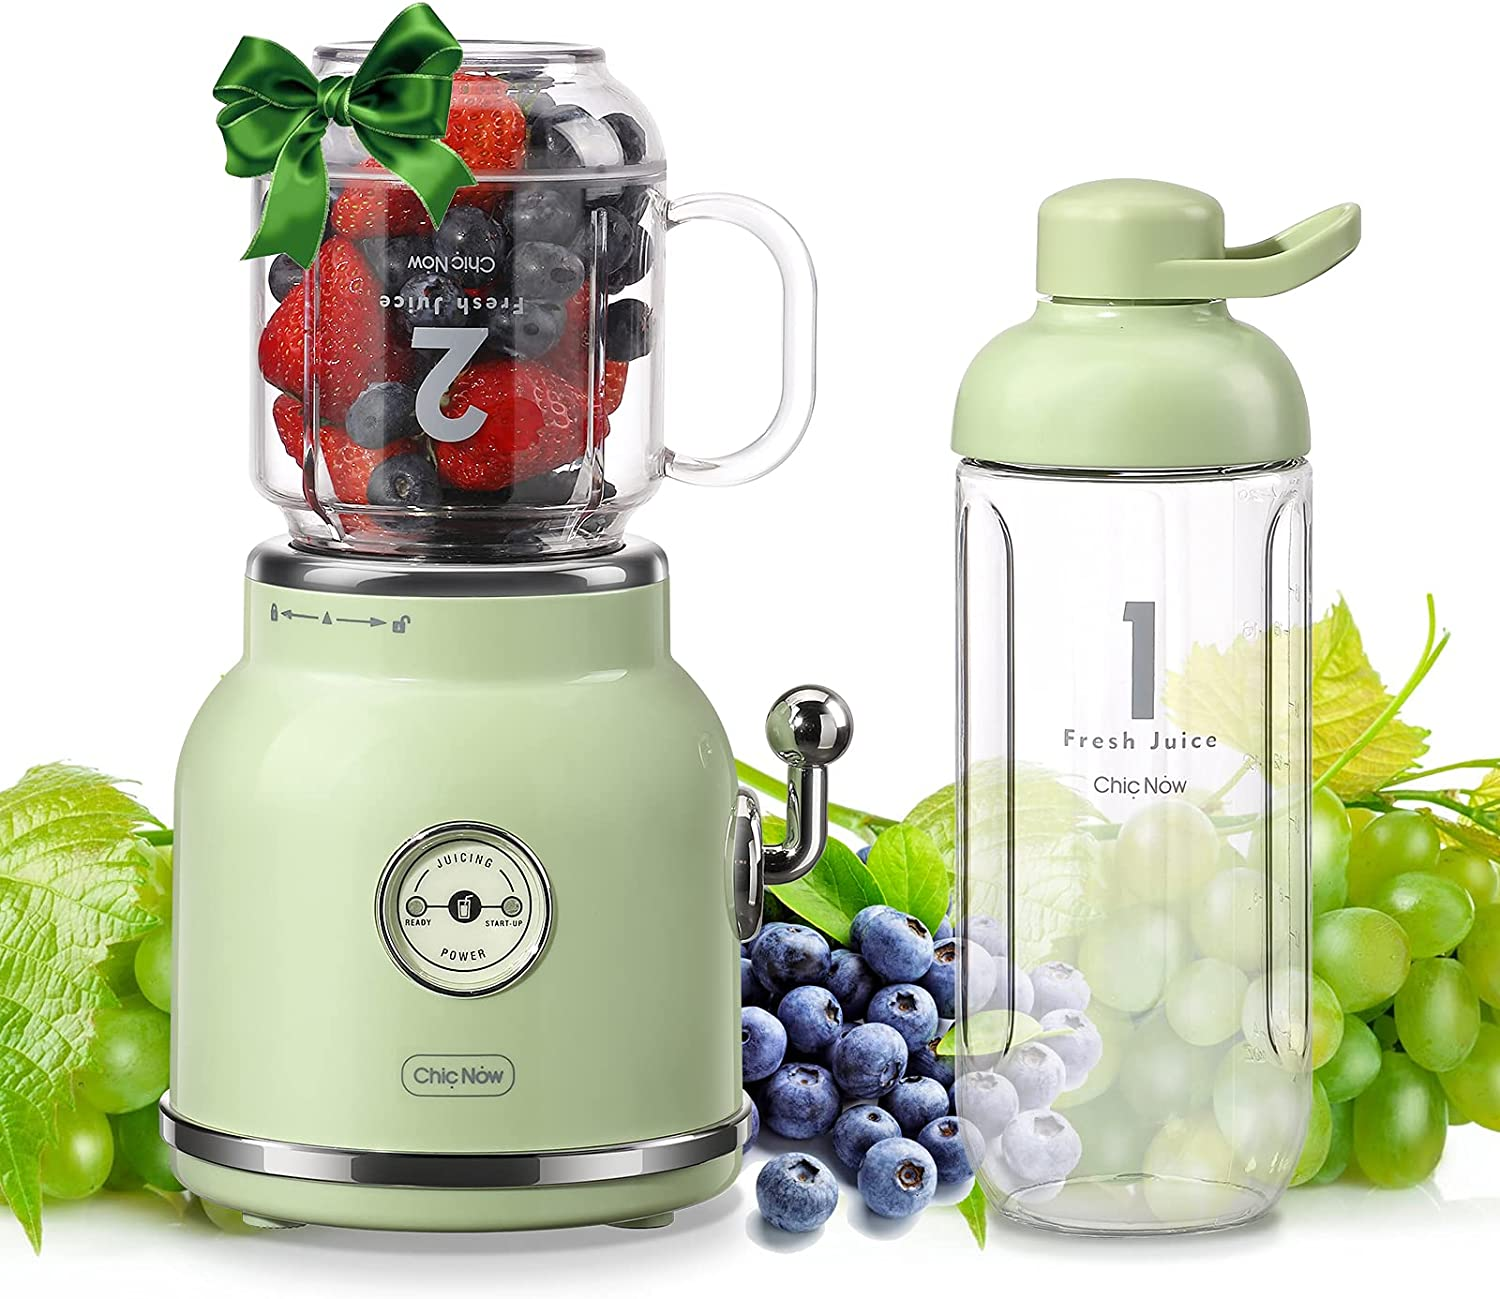 Smoothie Blender Personal Blender, ChicNow Portable Smoothie Maker for Juice Shakes and Smoothie with 6 Sharp Blades, Travel Cup and Lid, Green